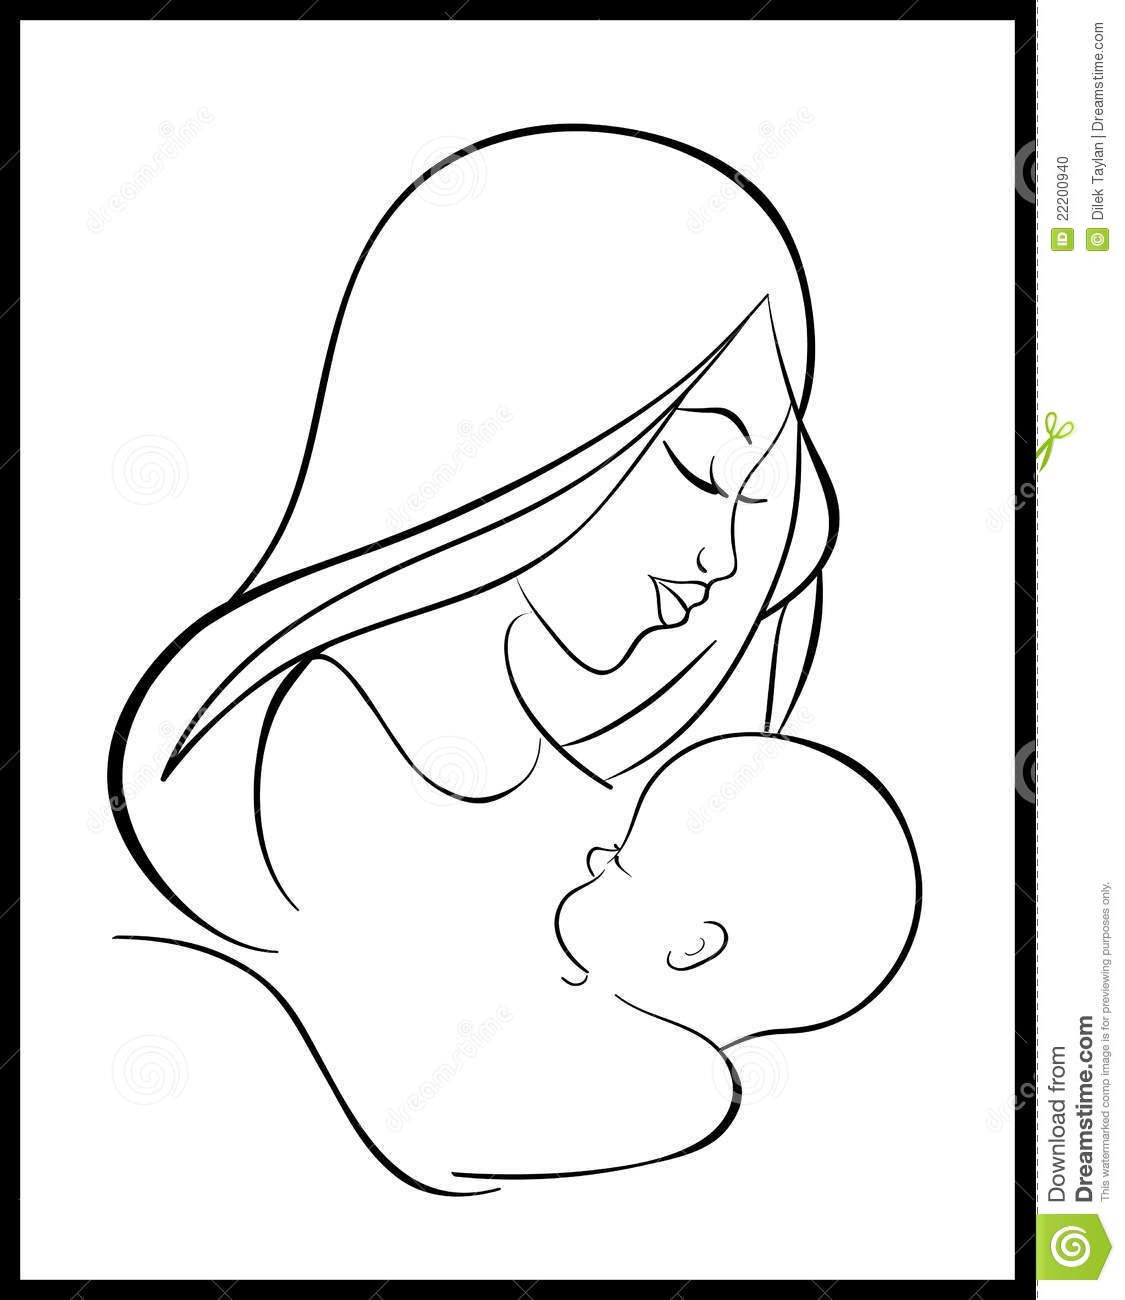 Caring For Baby Black And White Clipart - Clipart Kid